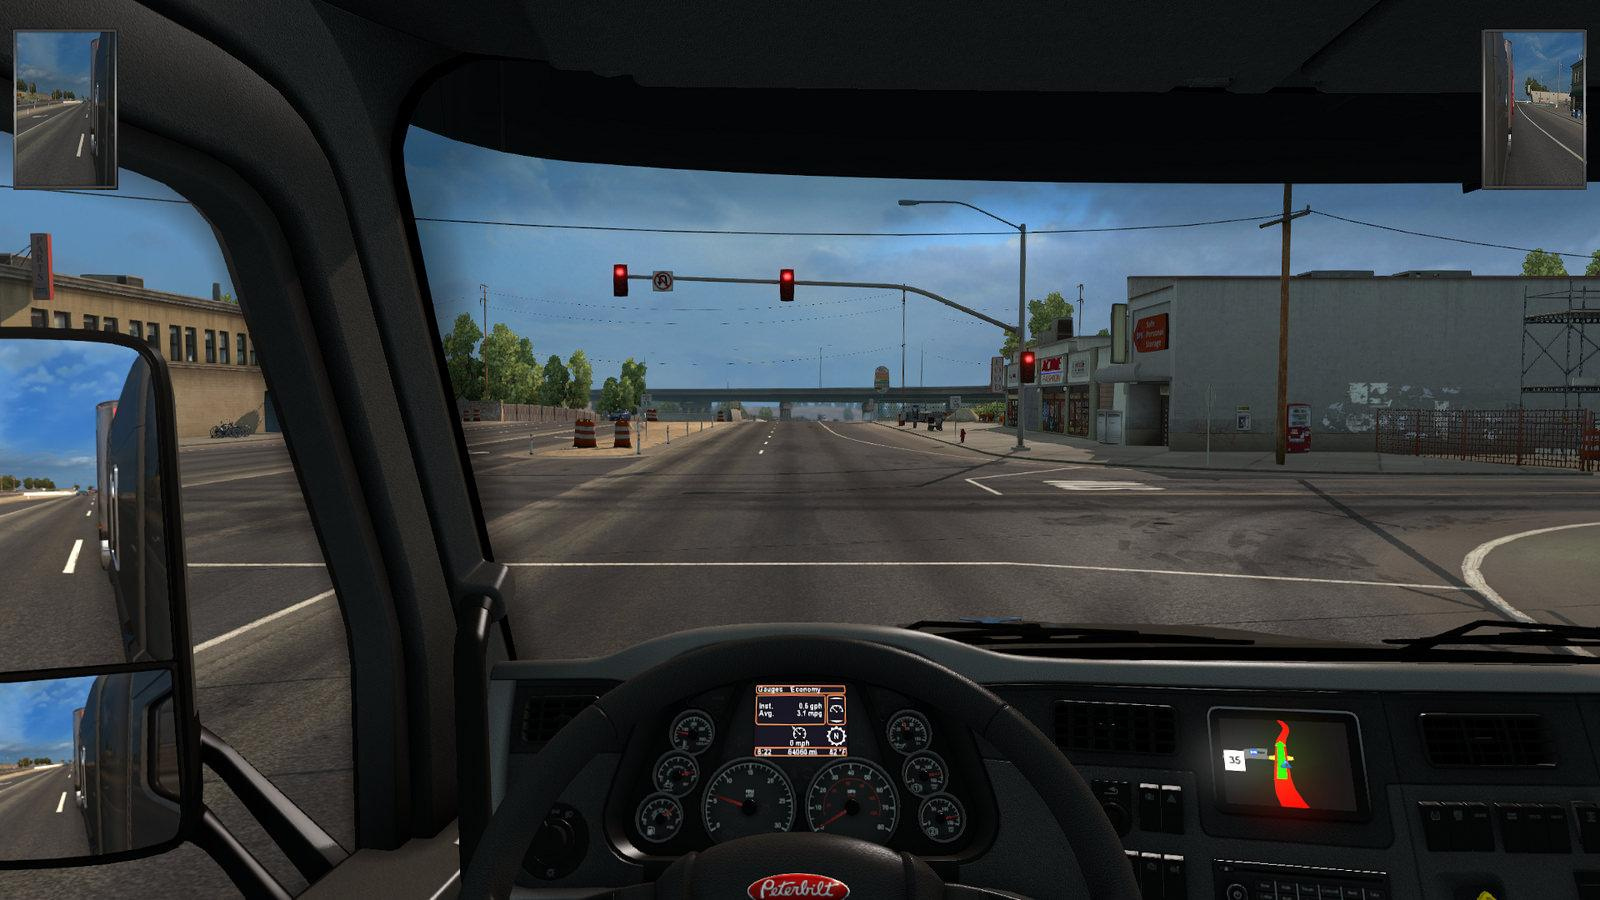 Hud Mirrors Made Smaller Part Euro Truck Simulator 2 Mods